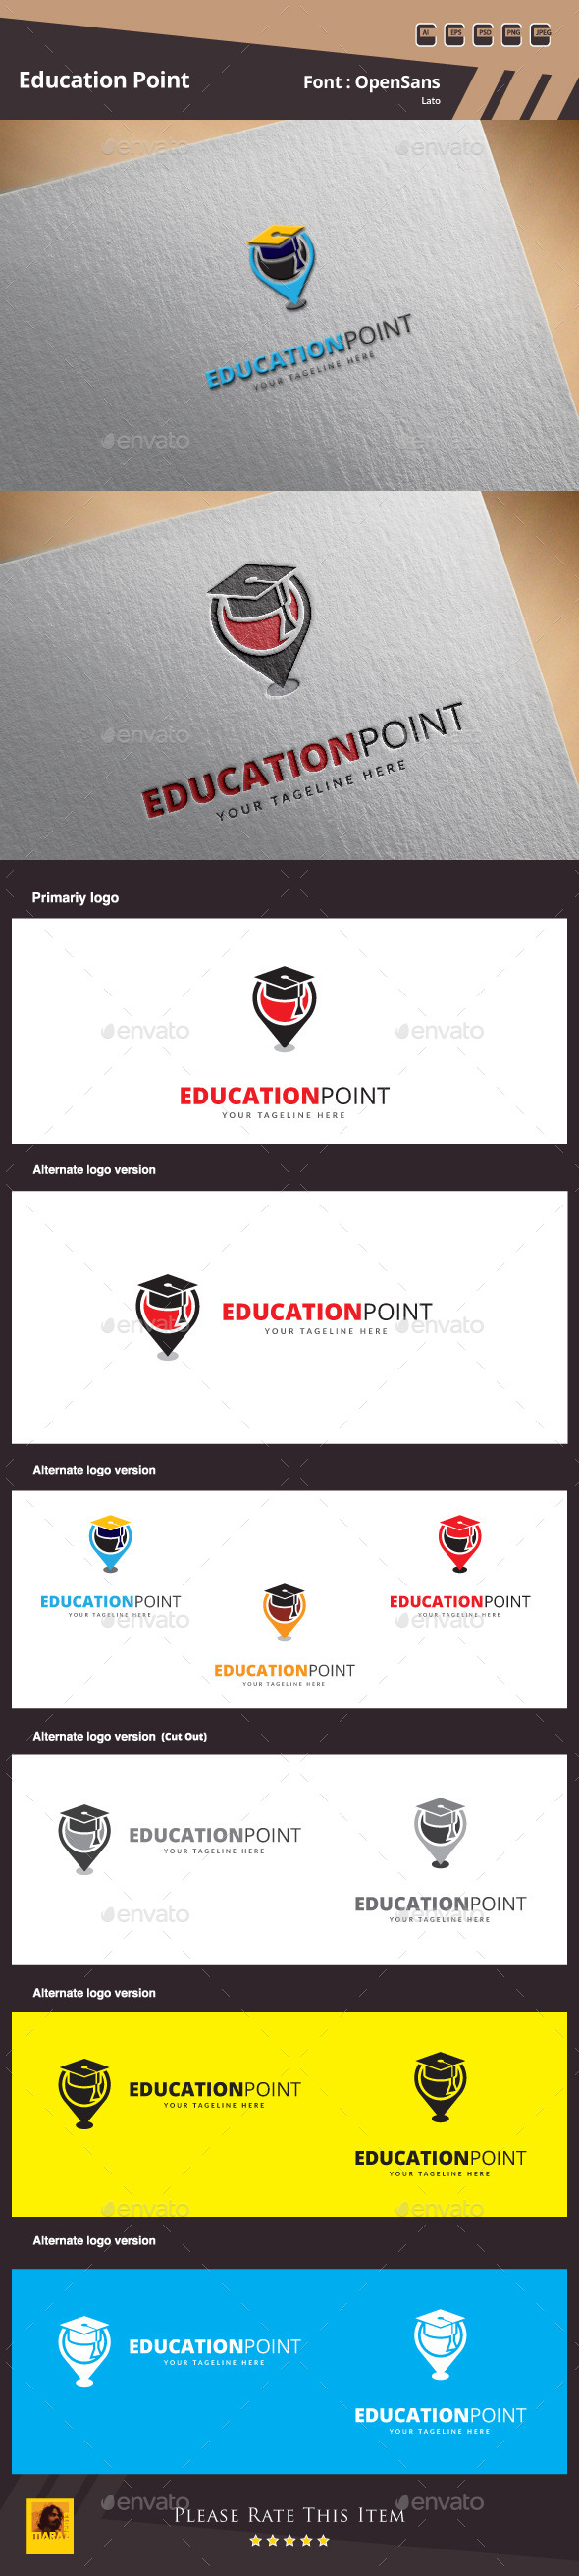 Education Point Logo Template - College Logo Templates